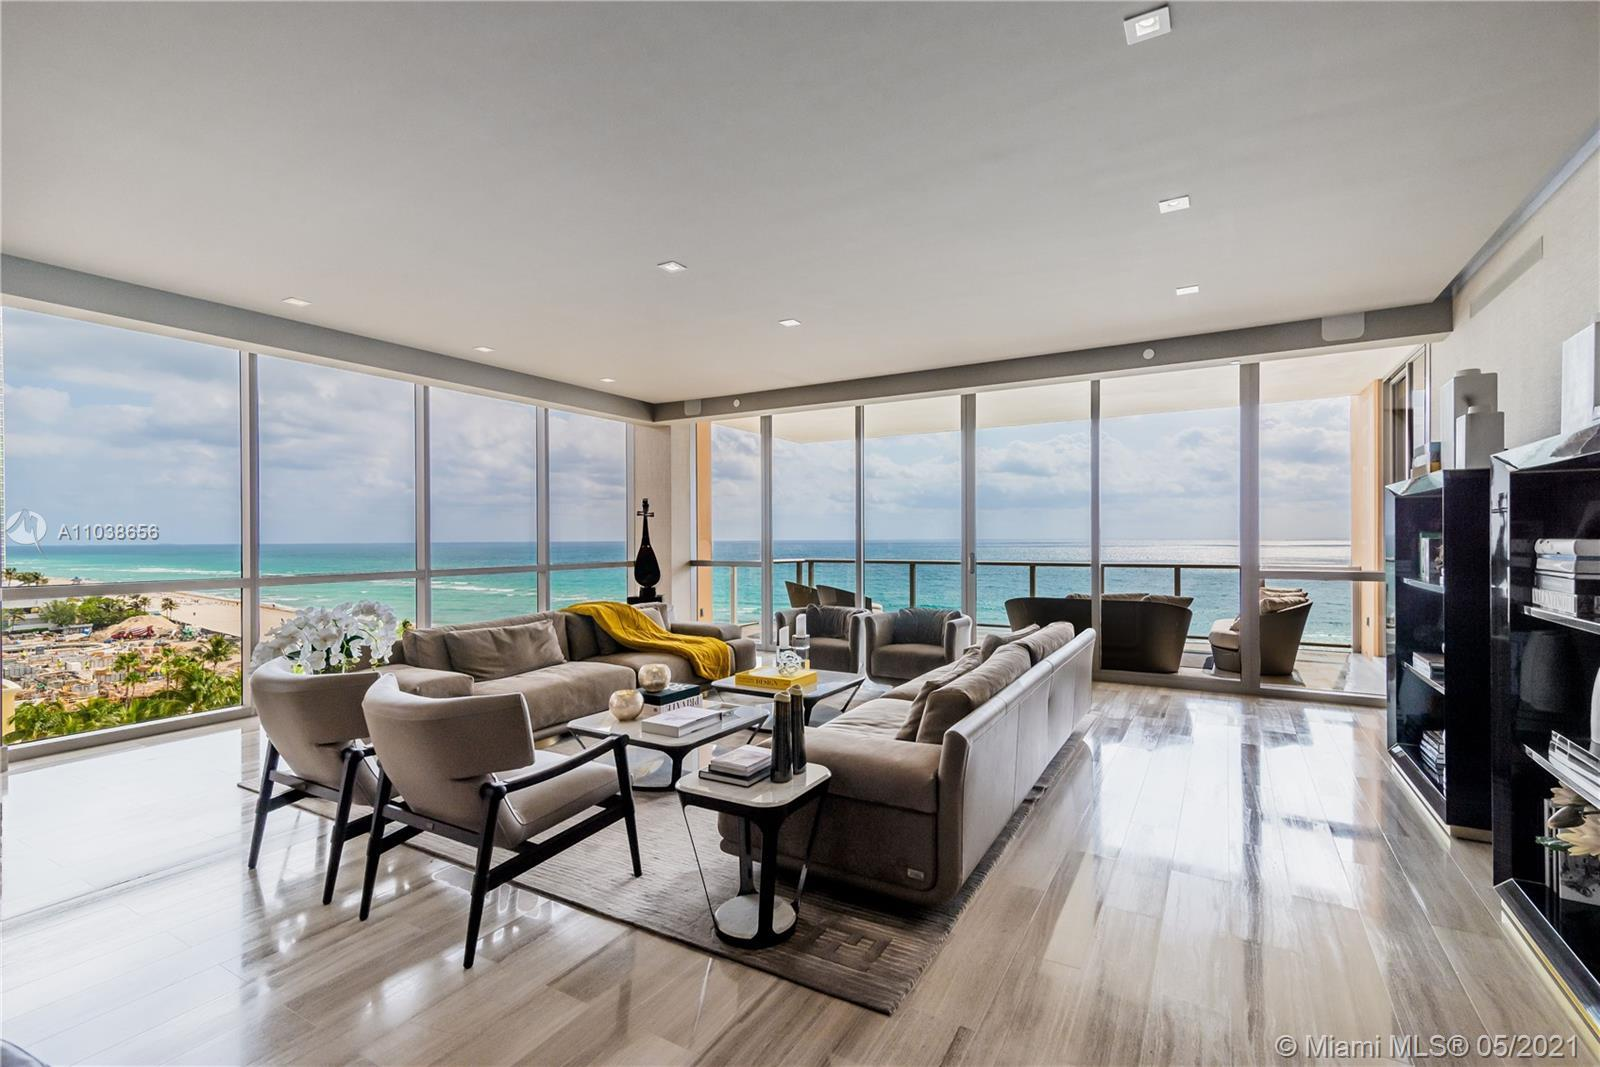 An incredible opportunity to own in the magnificent Mansions at Acqualina and enjoy the five star se